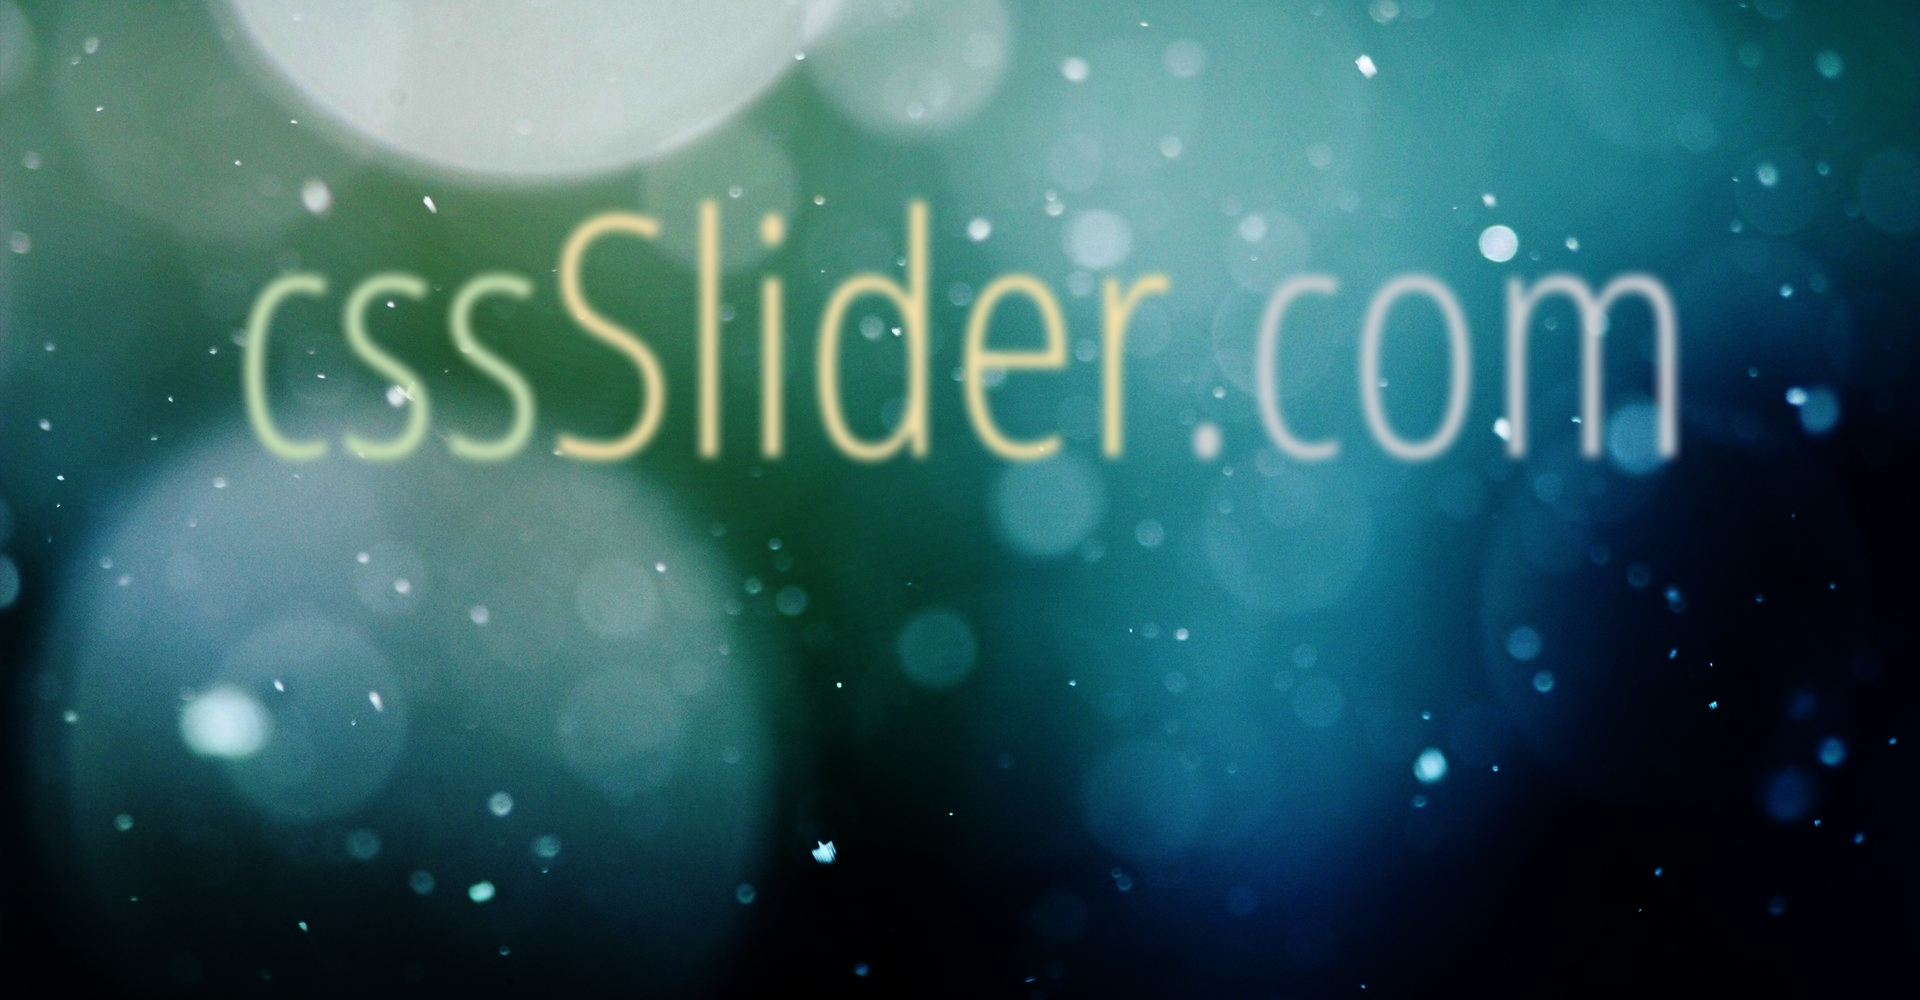 slider html css javascript free download